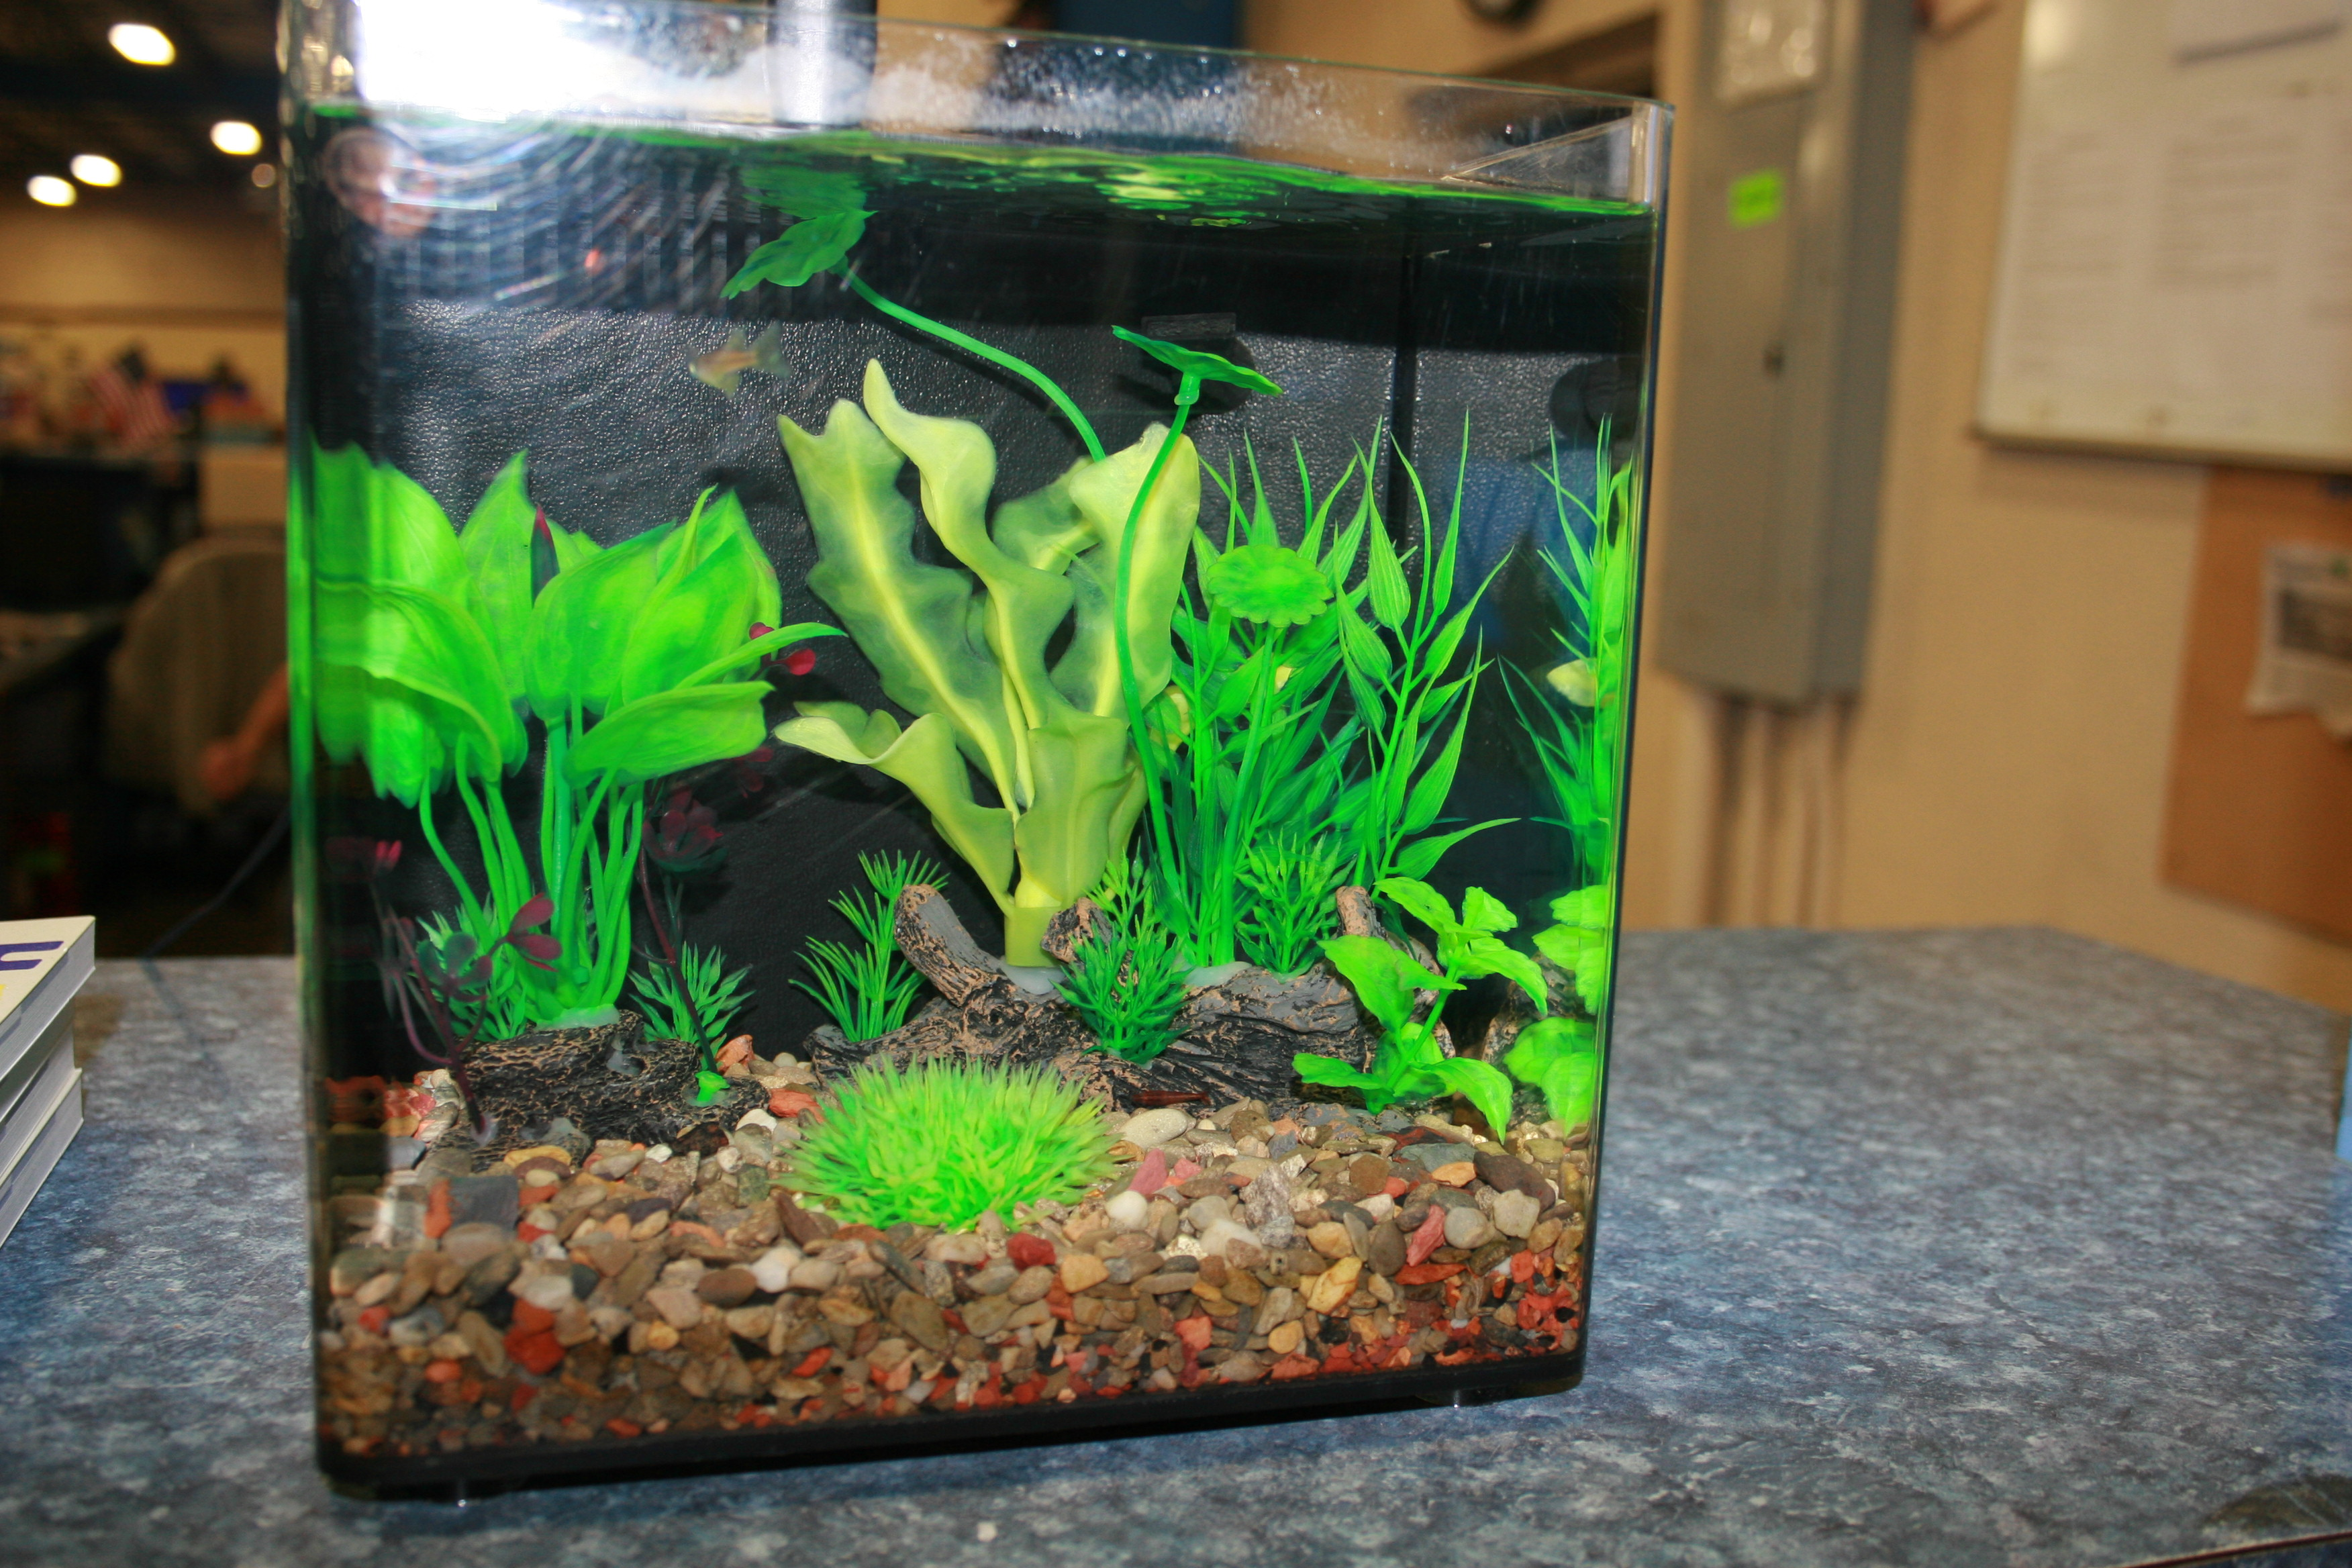 Aquarium Gravel and Substrate vs Bare-Bottom tanks: Pros and Cons